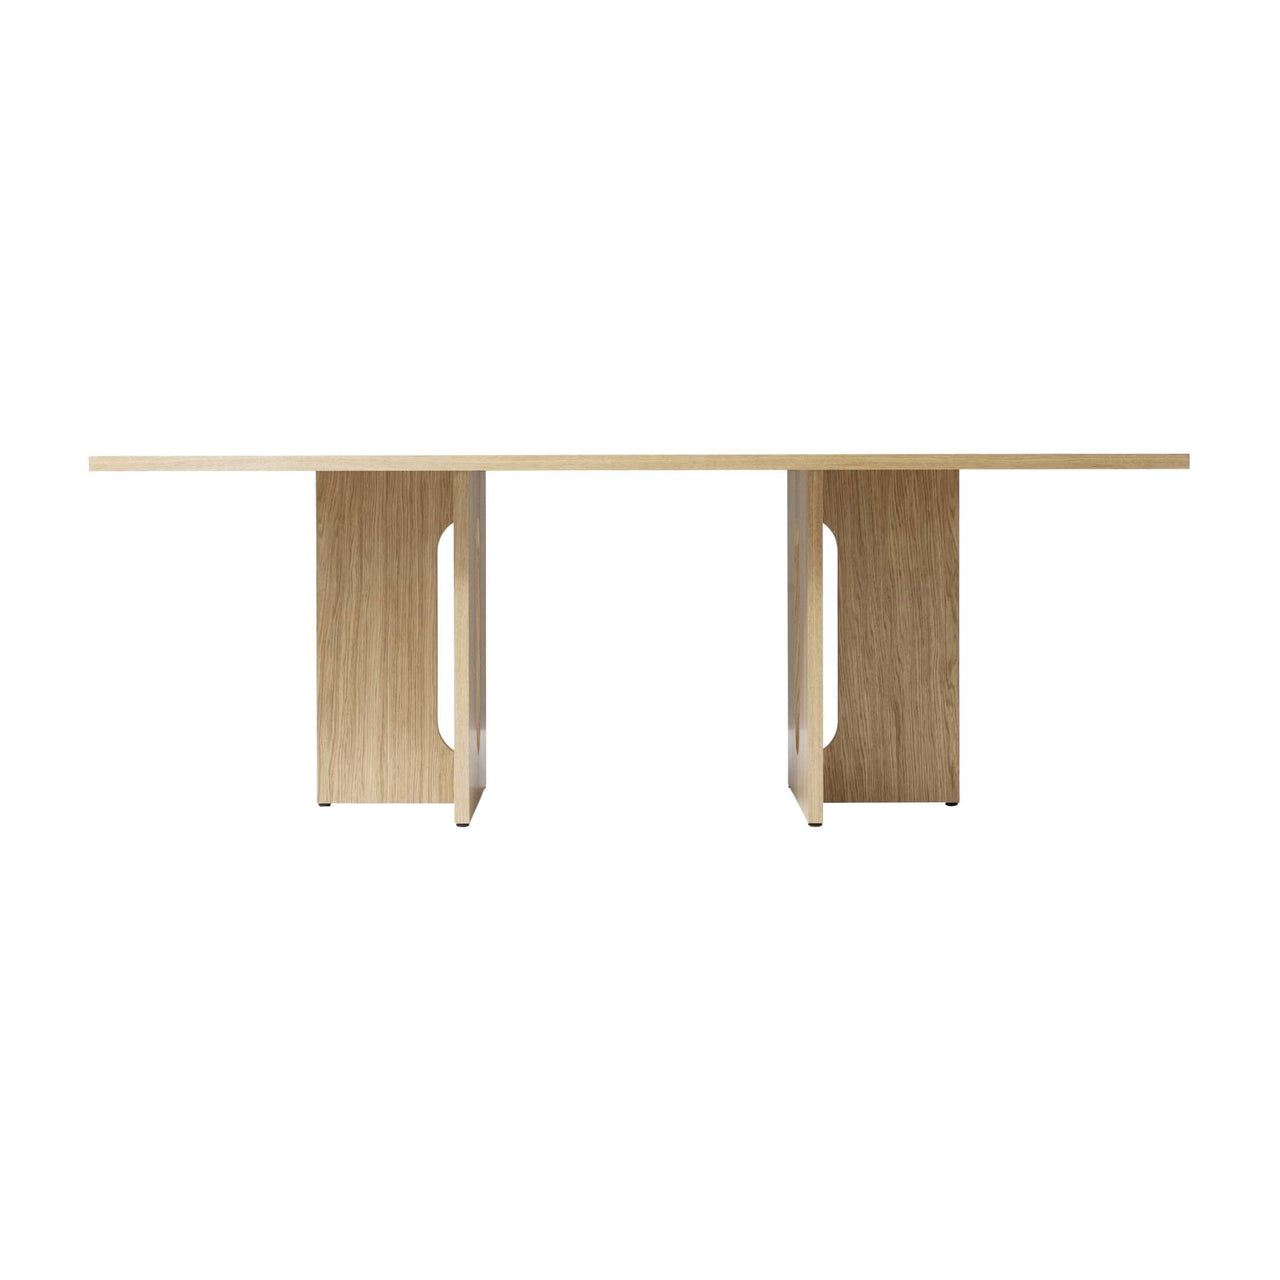 Androgyne Dining Table: Rectangular + Small - 82.7